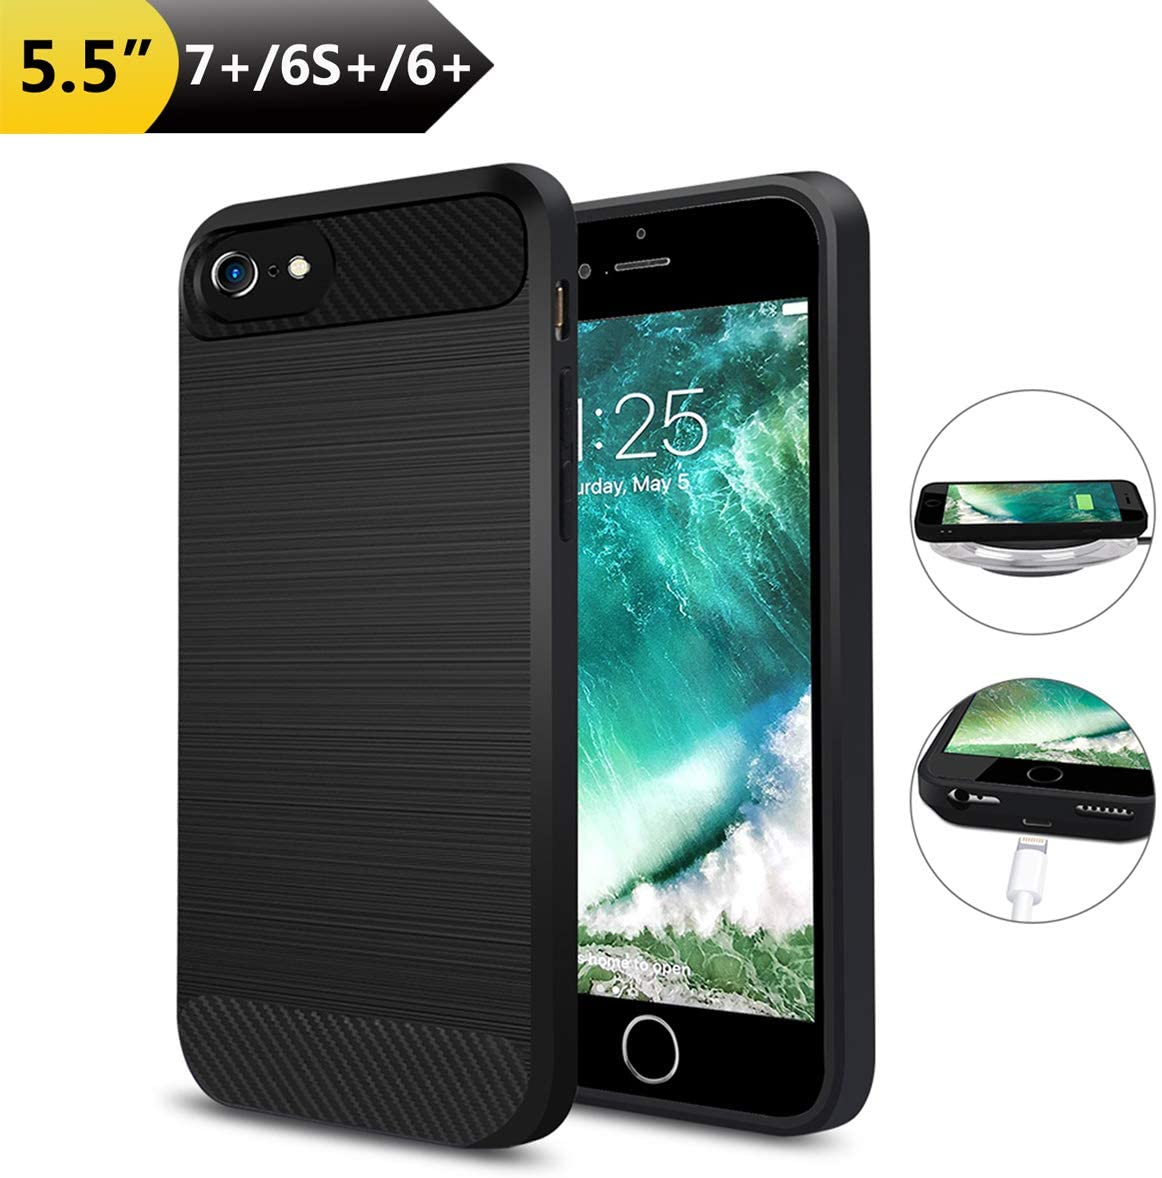 "ANGELIOX Wireless Charger Charging Case for iPhone 7 Plus/6S Plus/6 Plus(Only for Plus), Qi Wireless Charging Receiver TPU Protective Phone Cover,Brushed Surface(Not Battery-5.5"")"